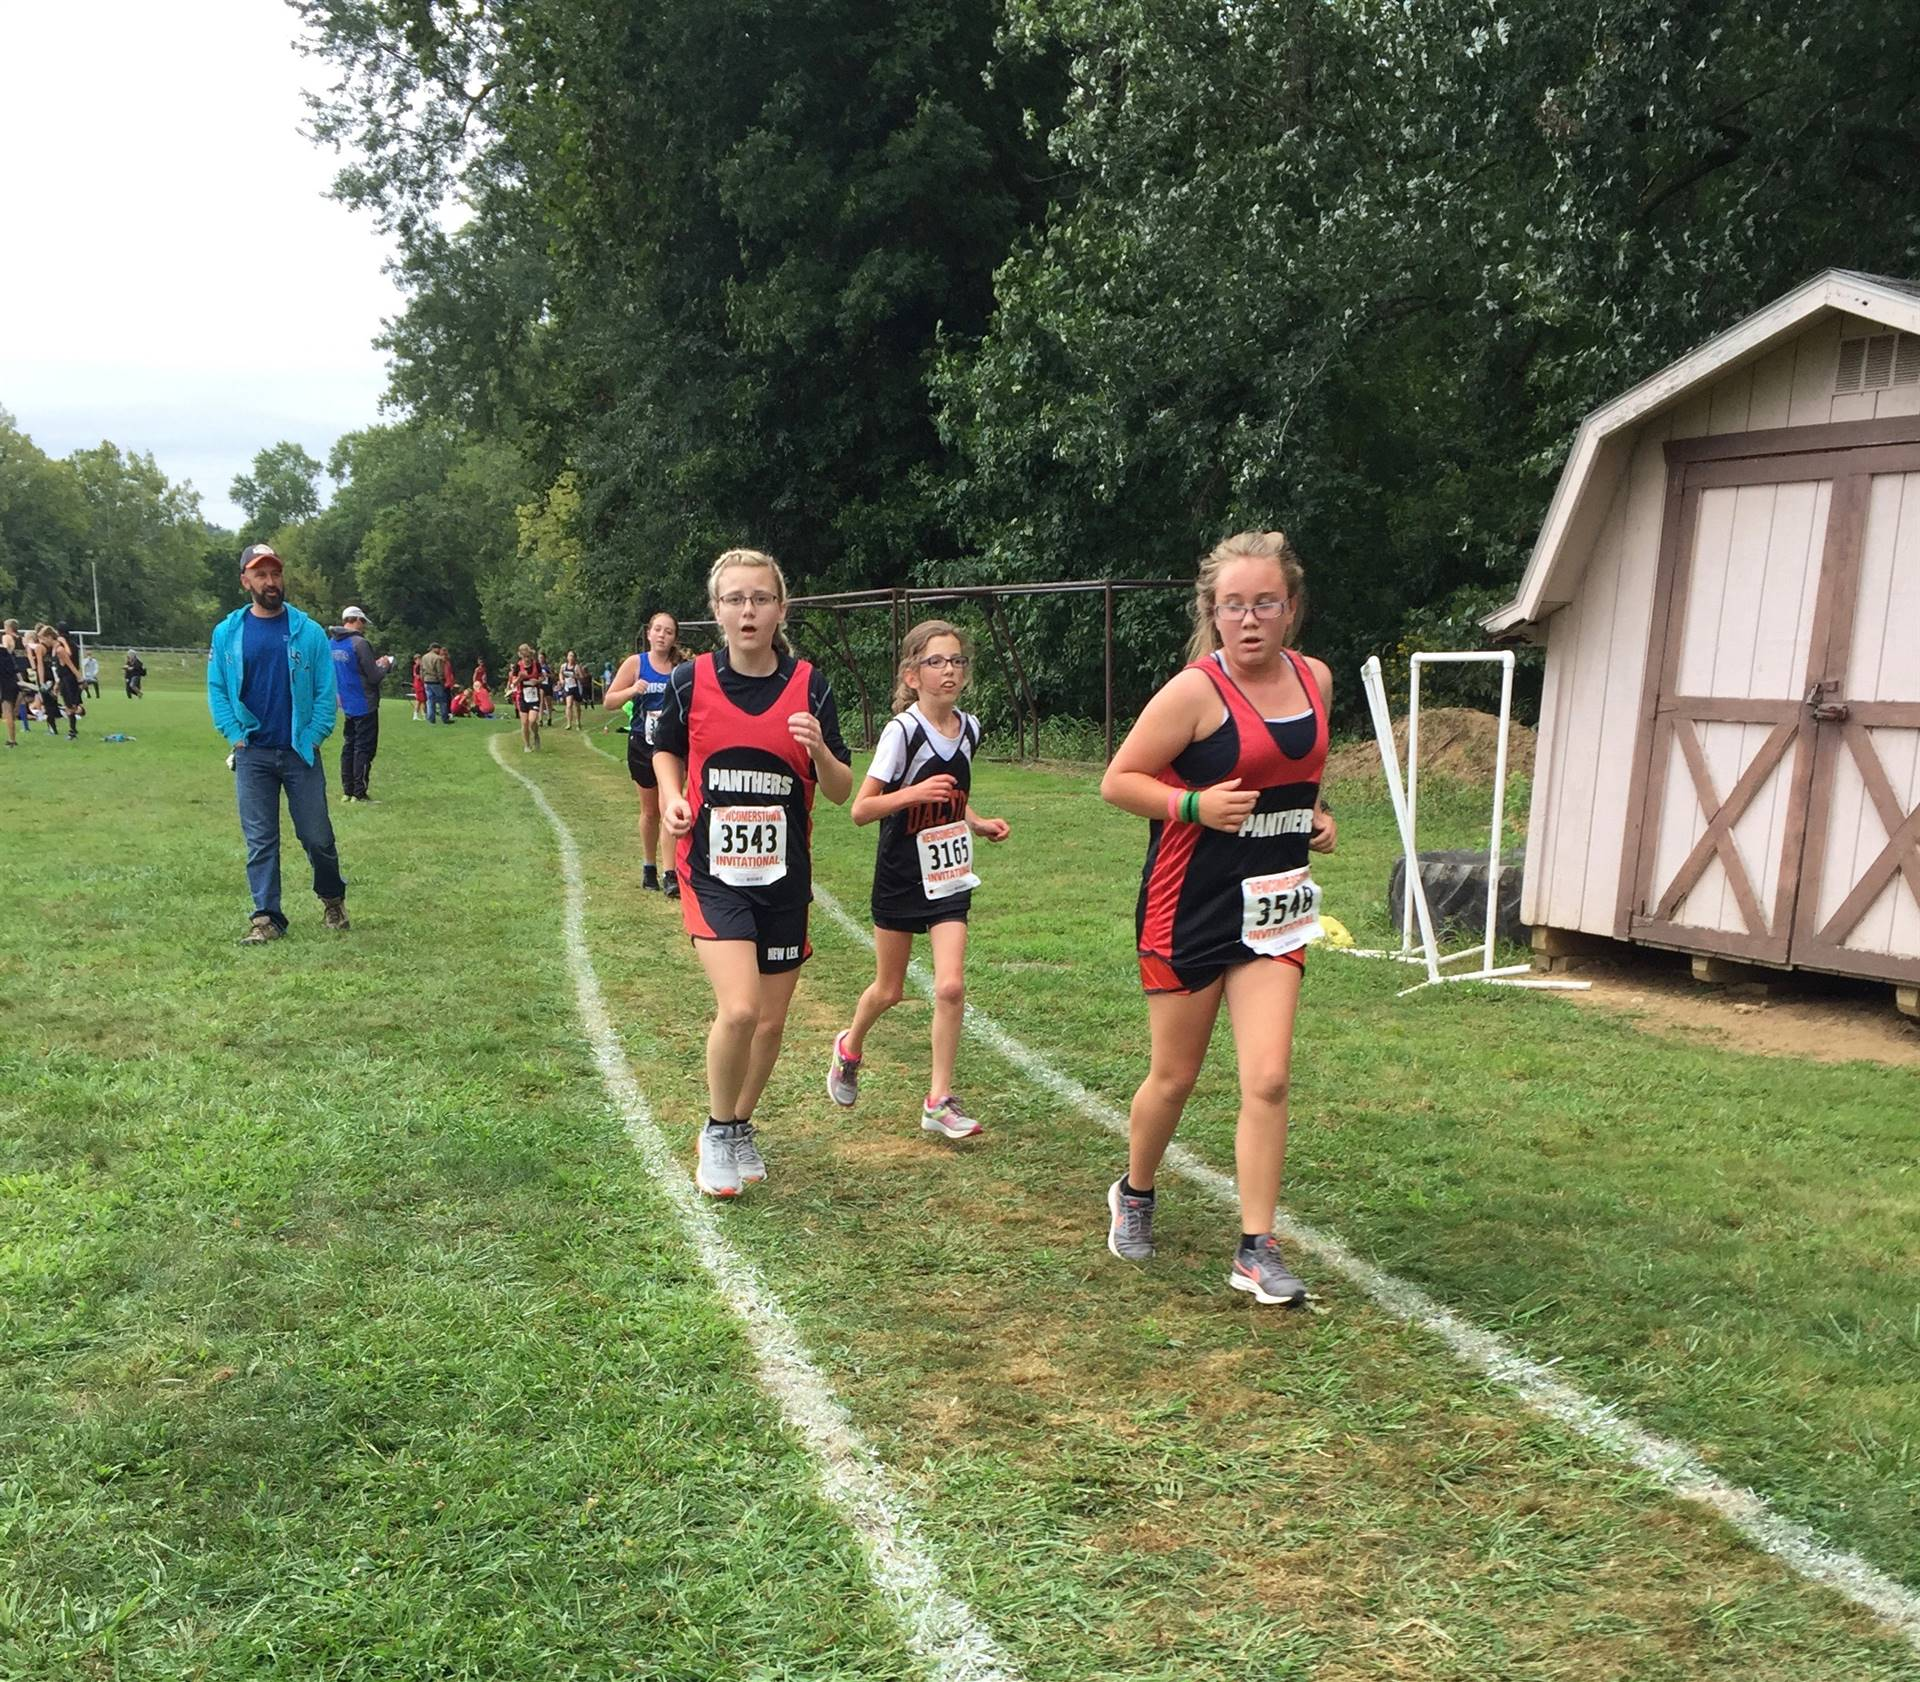 CC team @ Newcomerstown Invitational